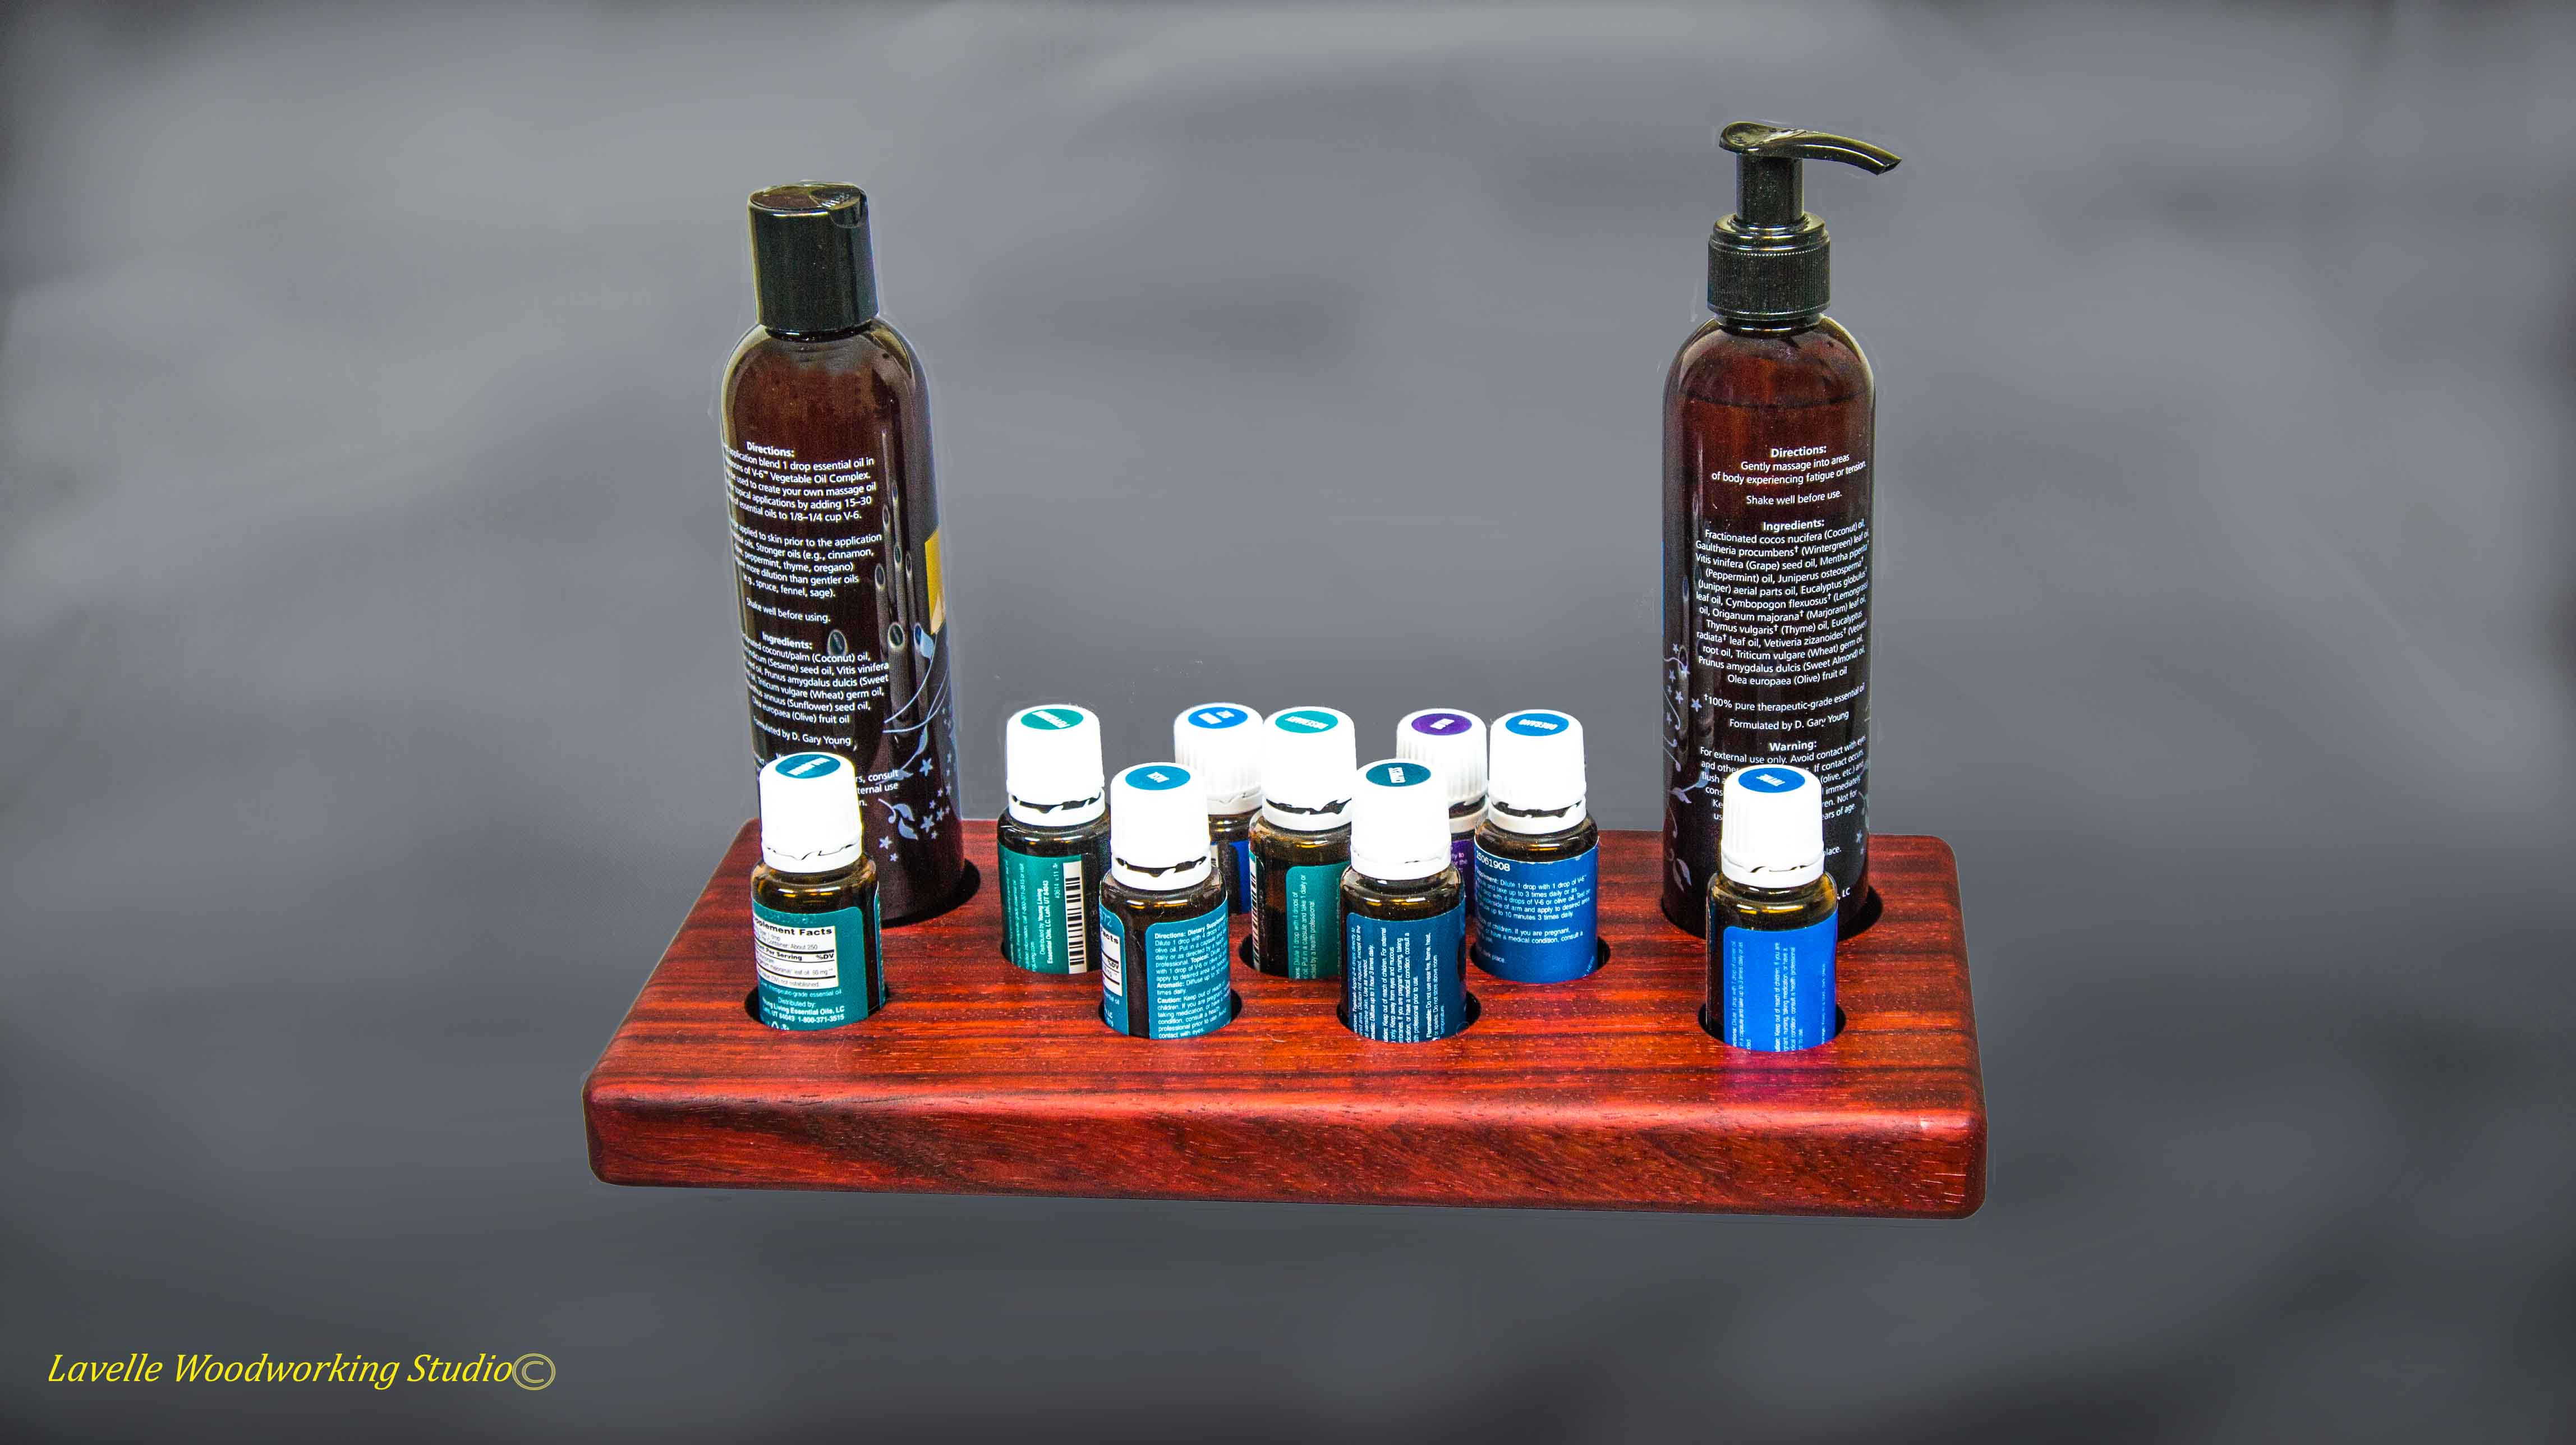 Rain Drop Oil Display Case With Oils